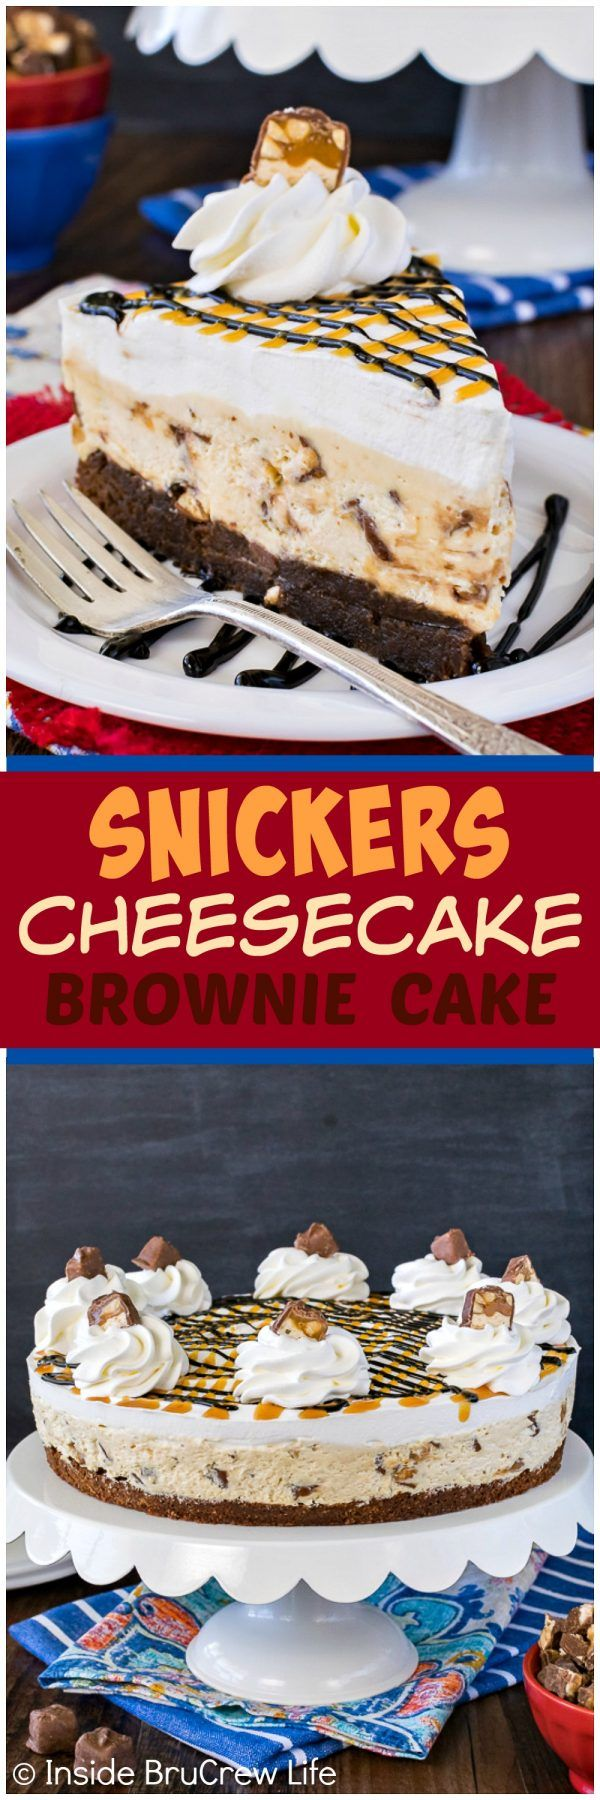 Snickers Cheesecake Brownie Cake - caramel cheesecake loaded with candy bars adds a fun layer to this easy homemade brownie cake. Easy dessert recipe for any party!